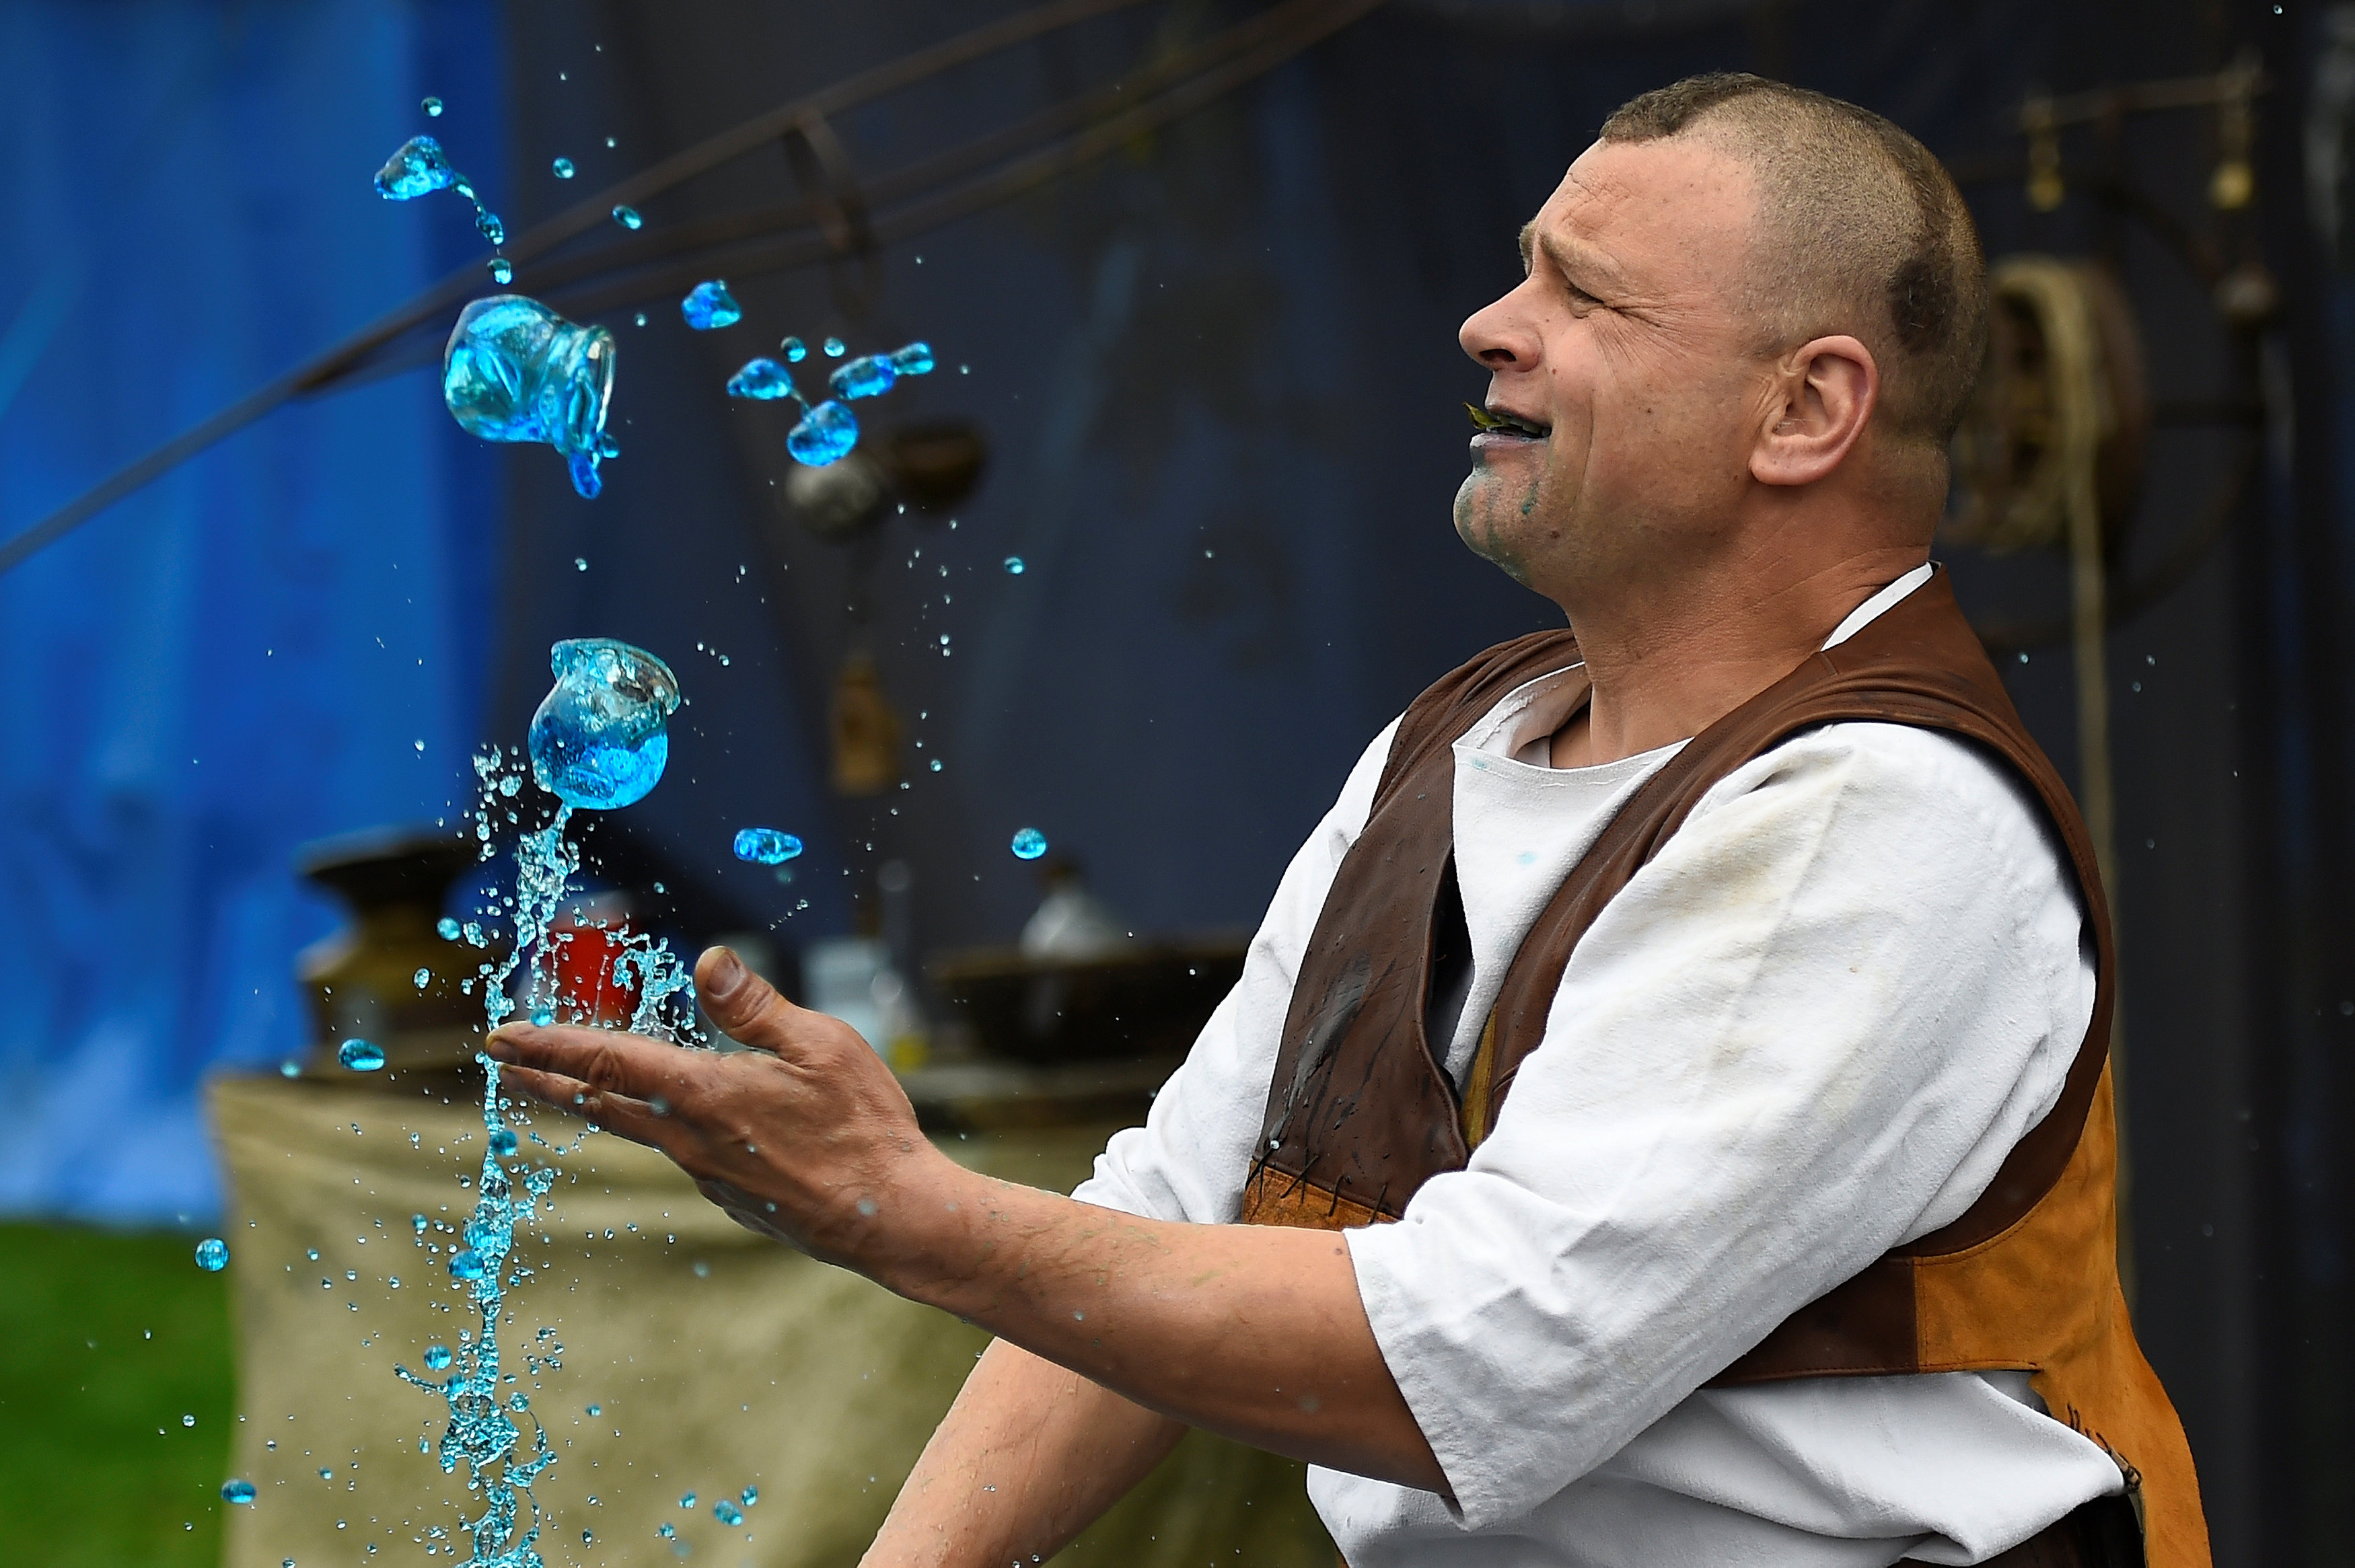 A man dressed as an alchemist demonstrates chemical tricks with bottles of liquids during a medieval combat festival at Claregalway castle in Galway